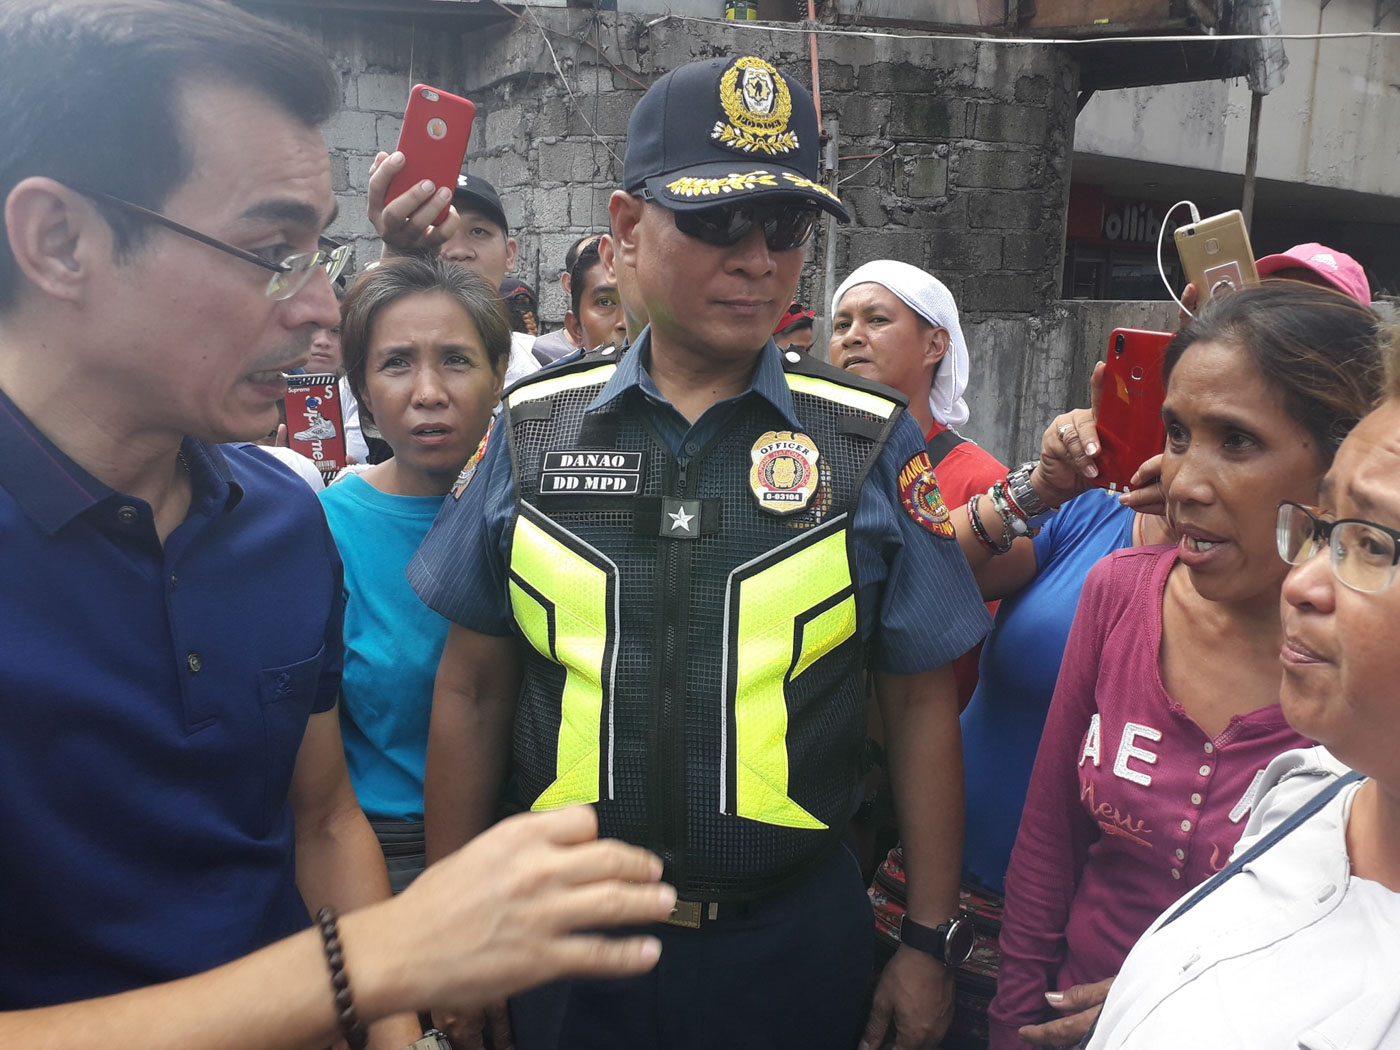 DIALOGUE. Mayor Isko Moreno talks to street vendors displaced by clearing operations in Manila. Photo from the Manila Public Information Office